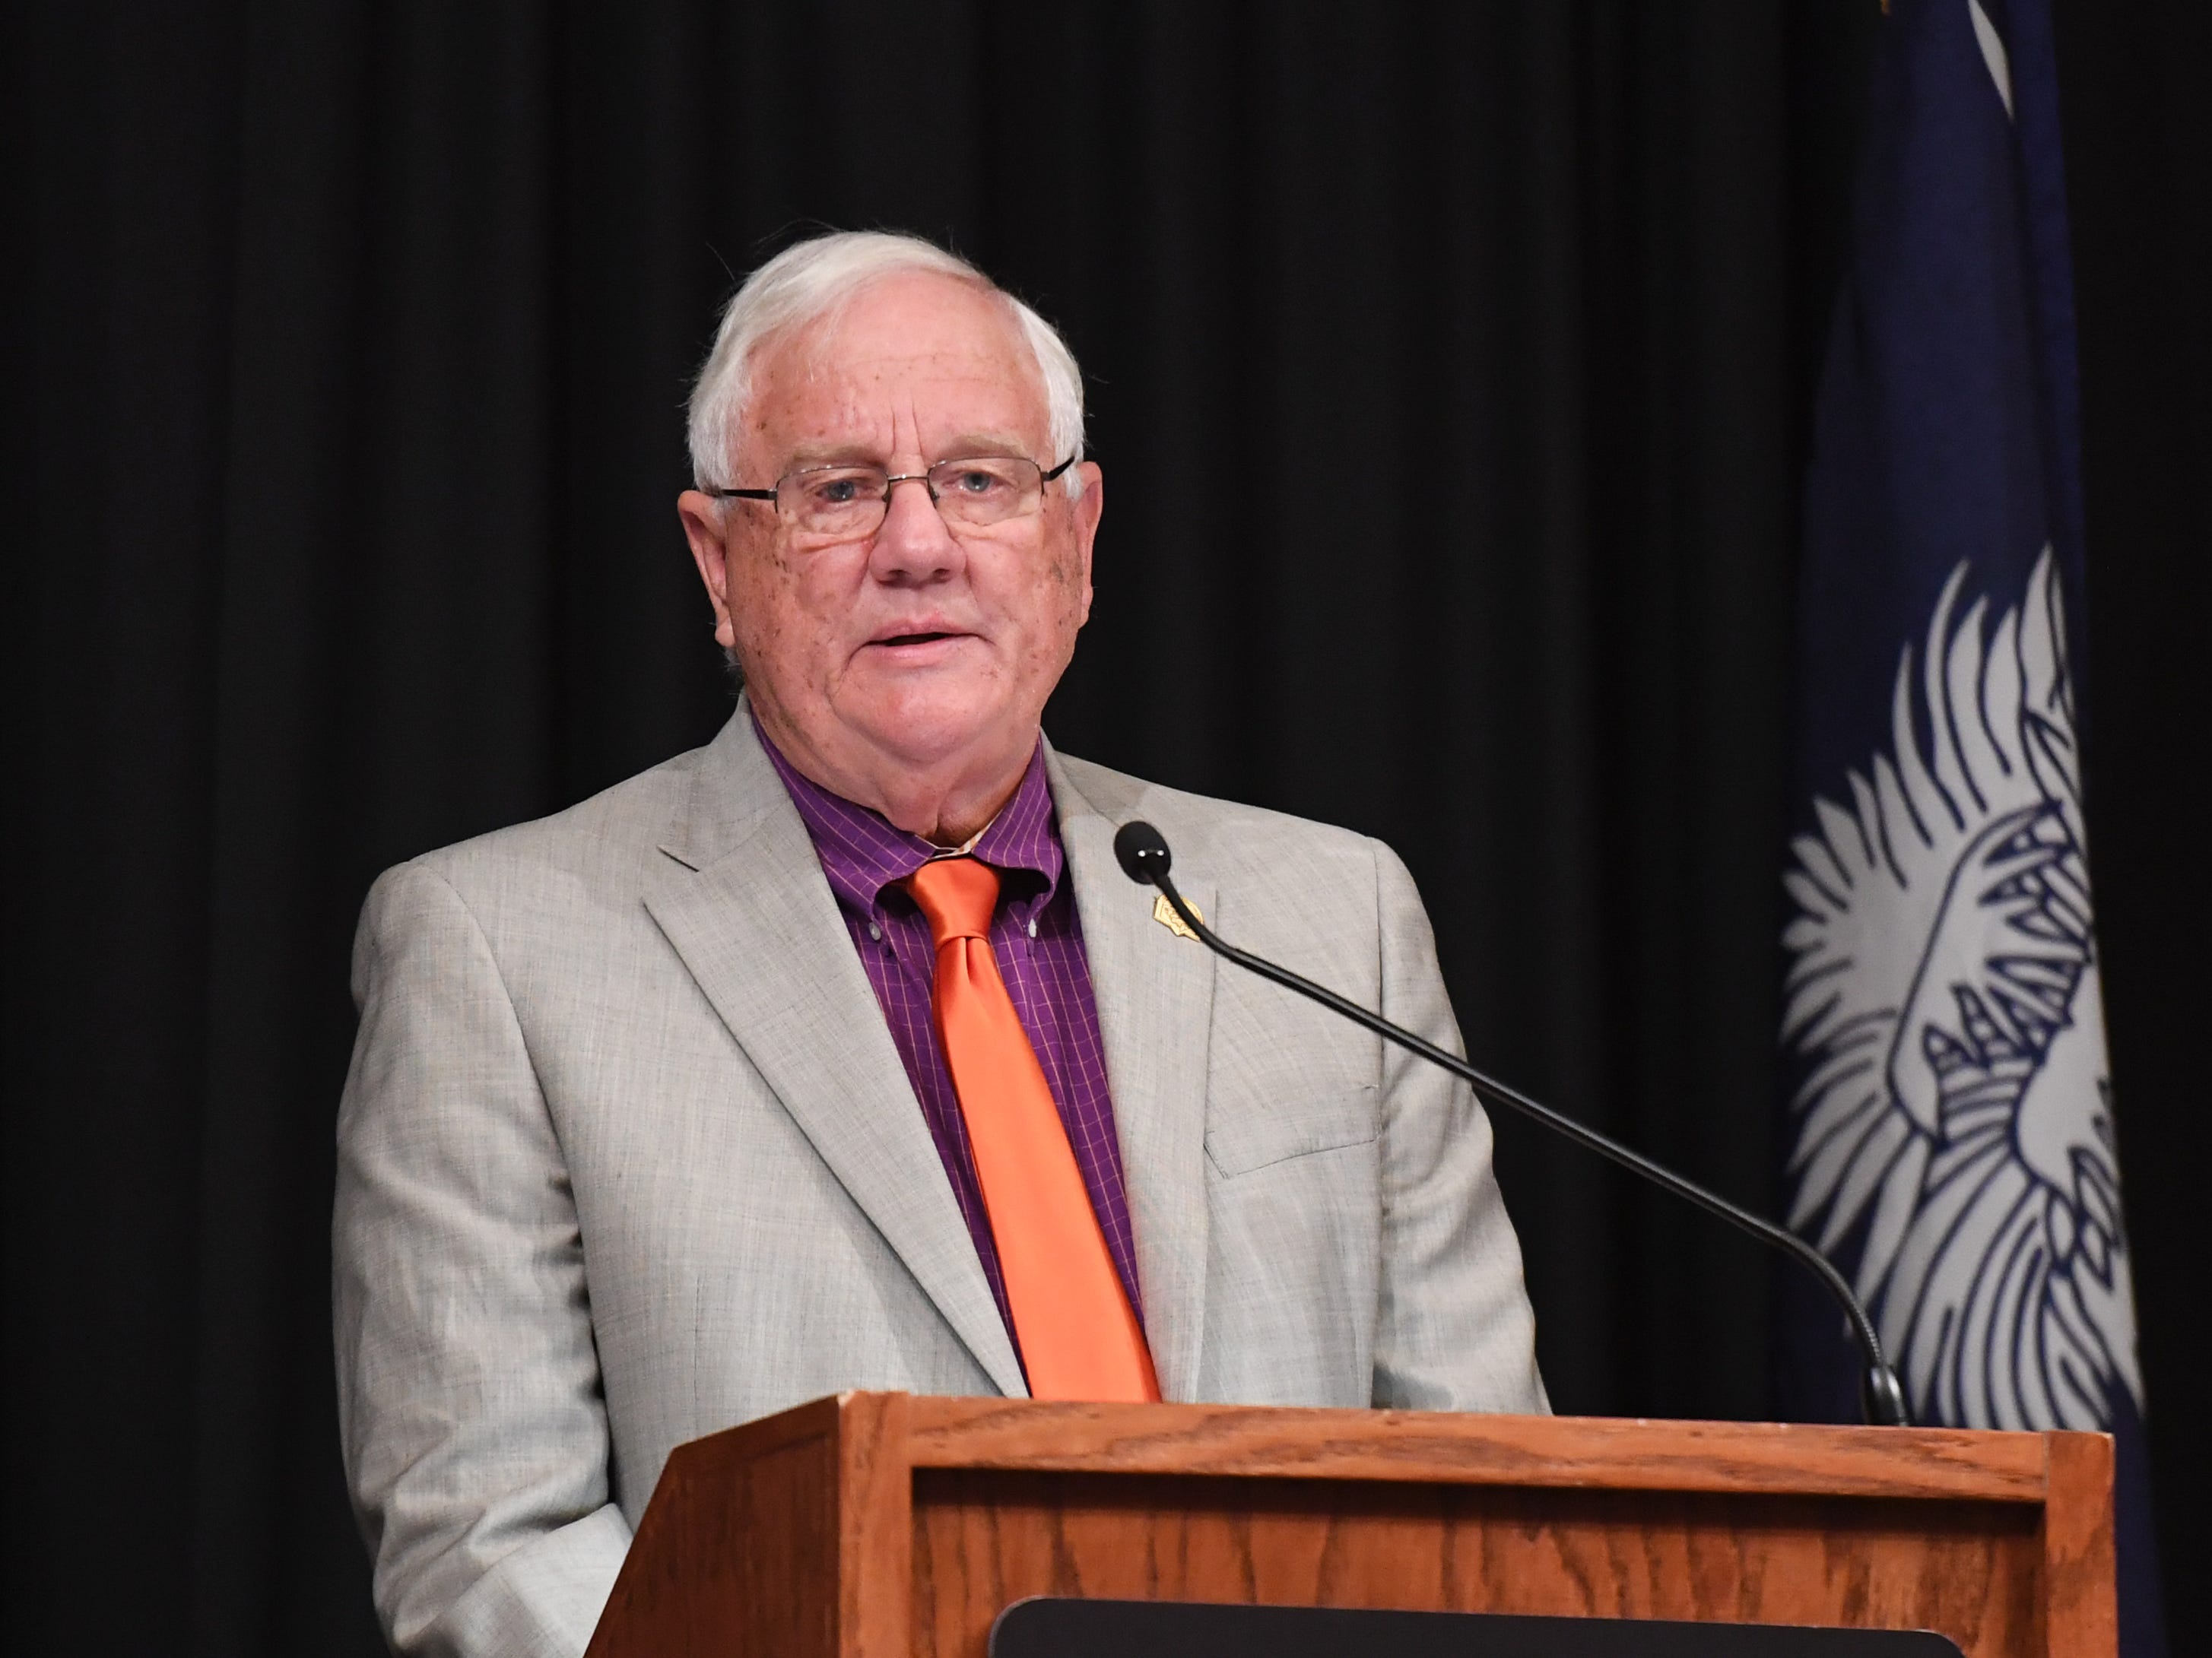 City of Clemson Mayor J.C. Cook talks about the city during of the State of Clemson event held at the Madren Center Tuesday, Feb. 19, 2019.